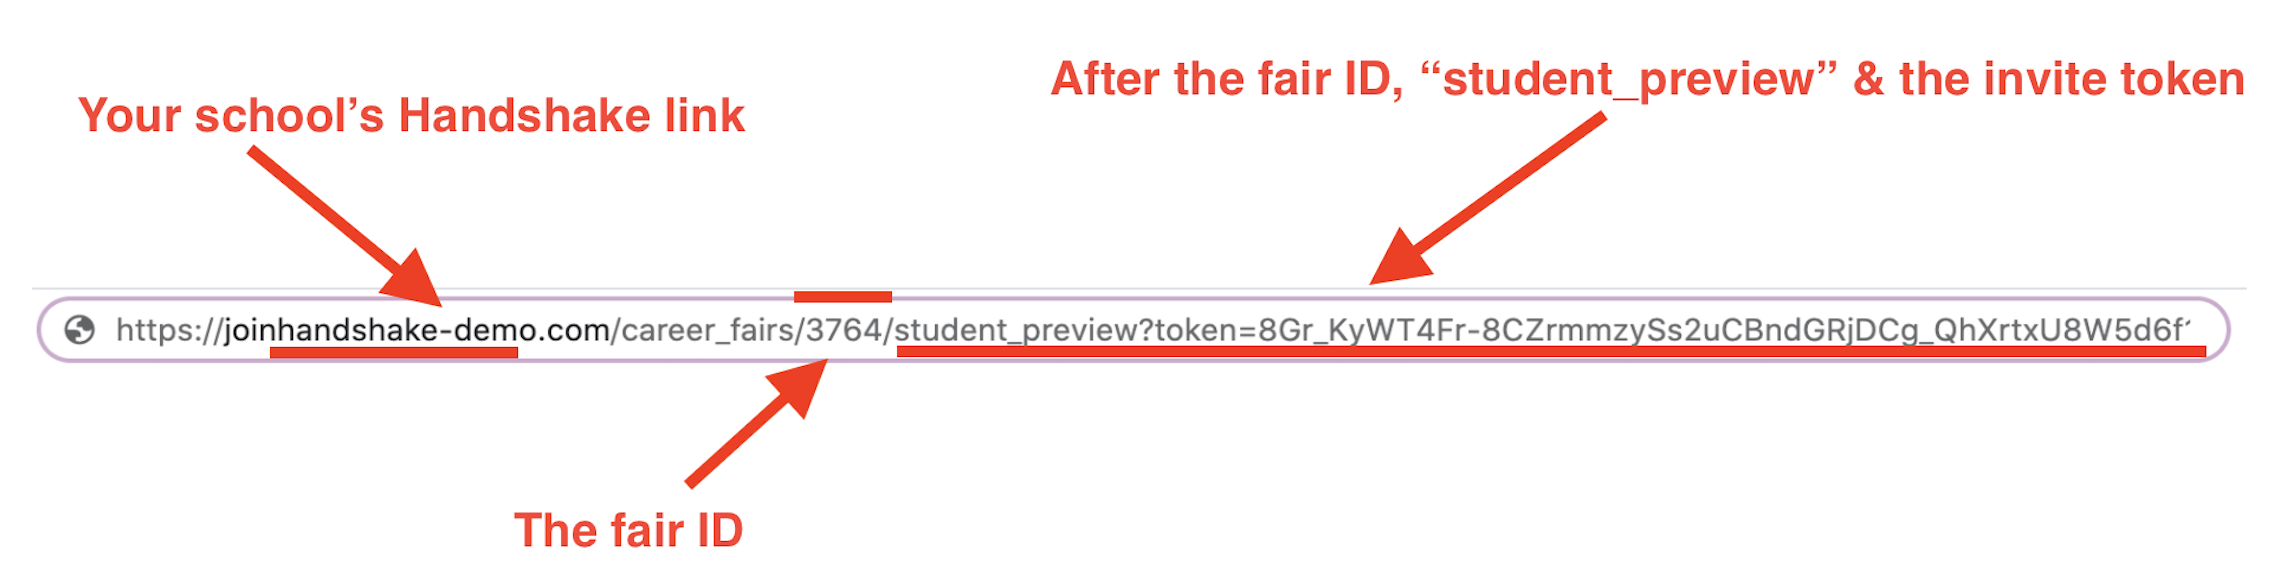 student_preview_link_details.png